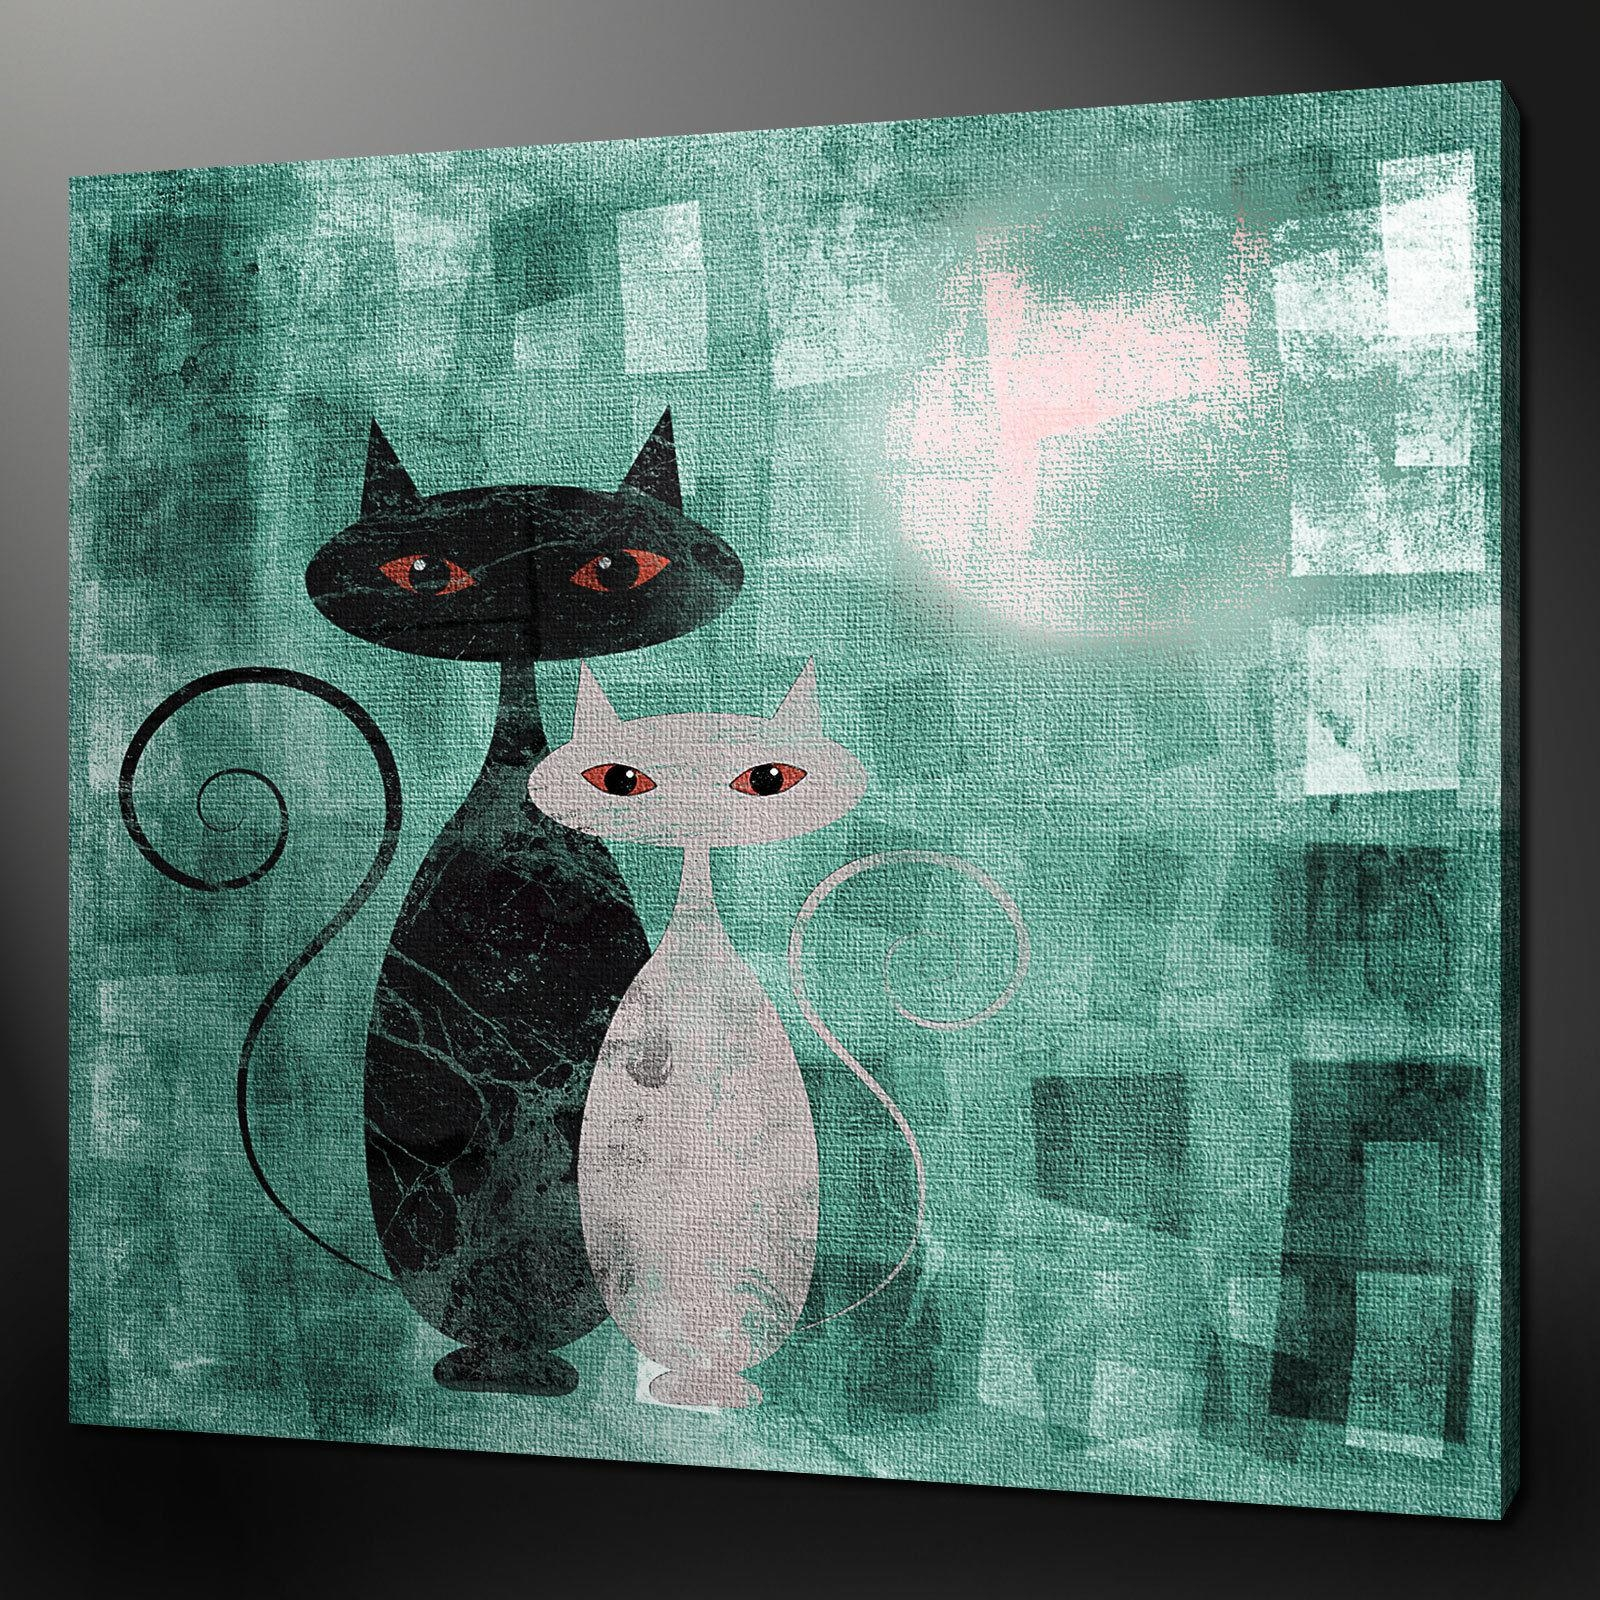 "Cats Art Deco Teal Aqua Canvas Wall Art Pictures Prints 24""x24 With Regard To Teal Wall Art Uk (View 2 of 20)"